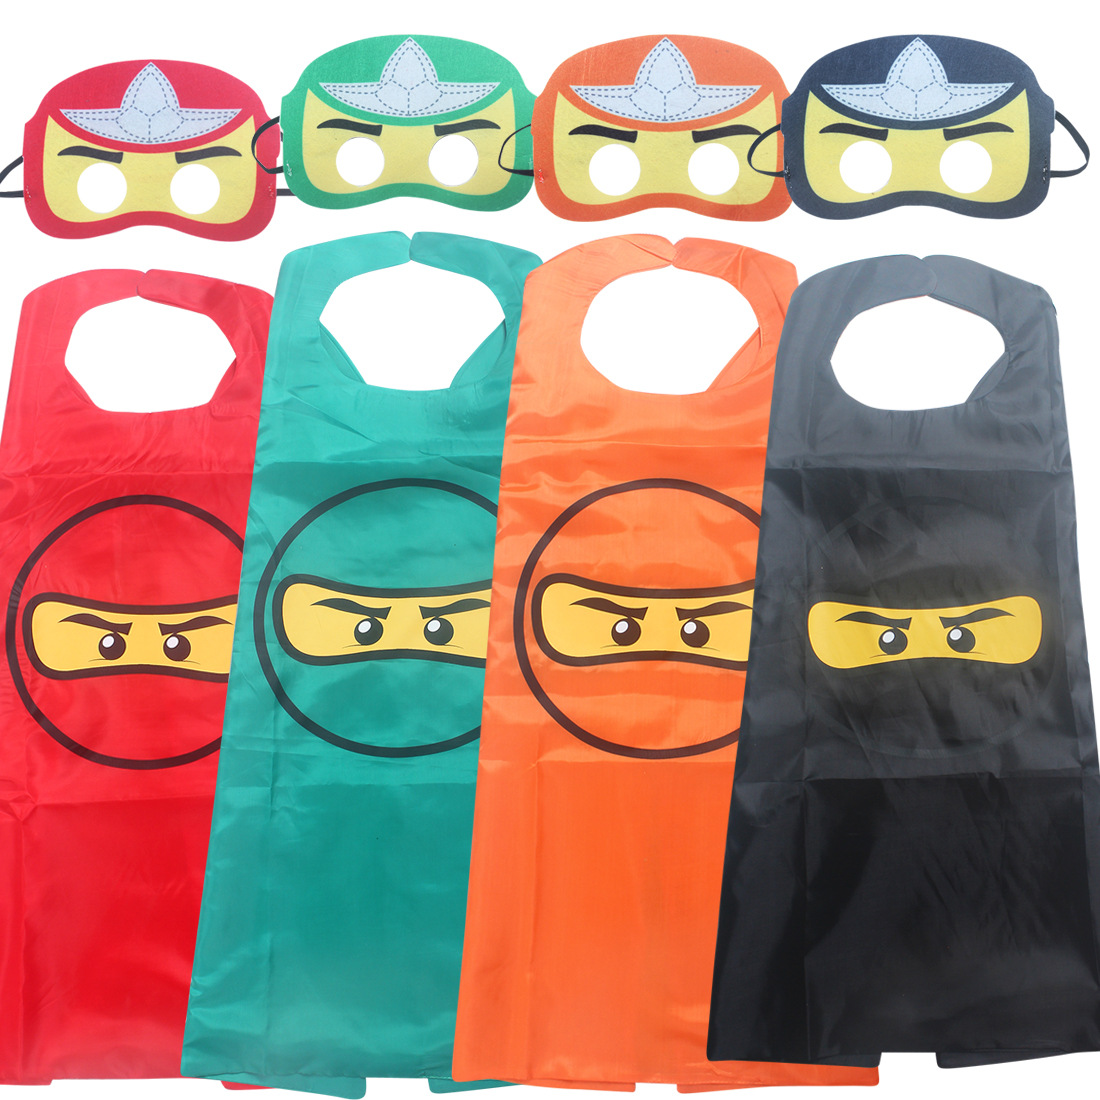 Ninja Ninjago Superhero Spiderman Batman Capes Mask Character For Kids Birthday Party Clothing Halloween cosplay Costumes  2-10Y ninja ninjago superhero spiderman batman capes mask character for kids birthday party clothing halloween cosplay costumes 2 10y